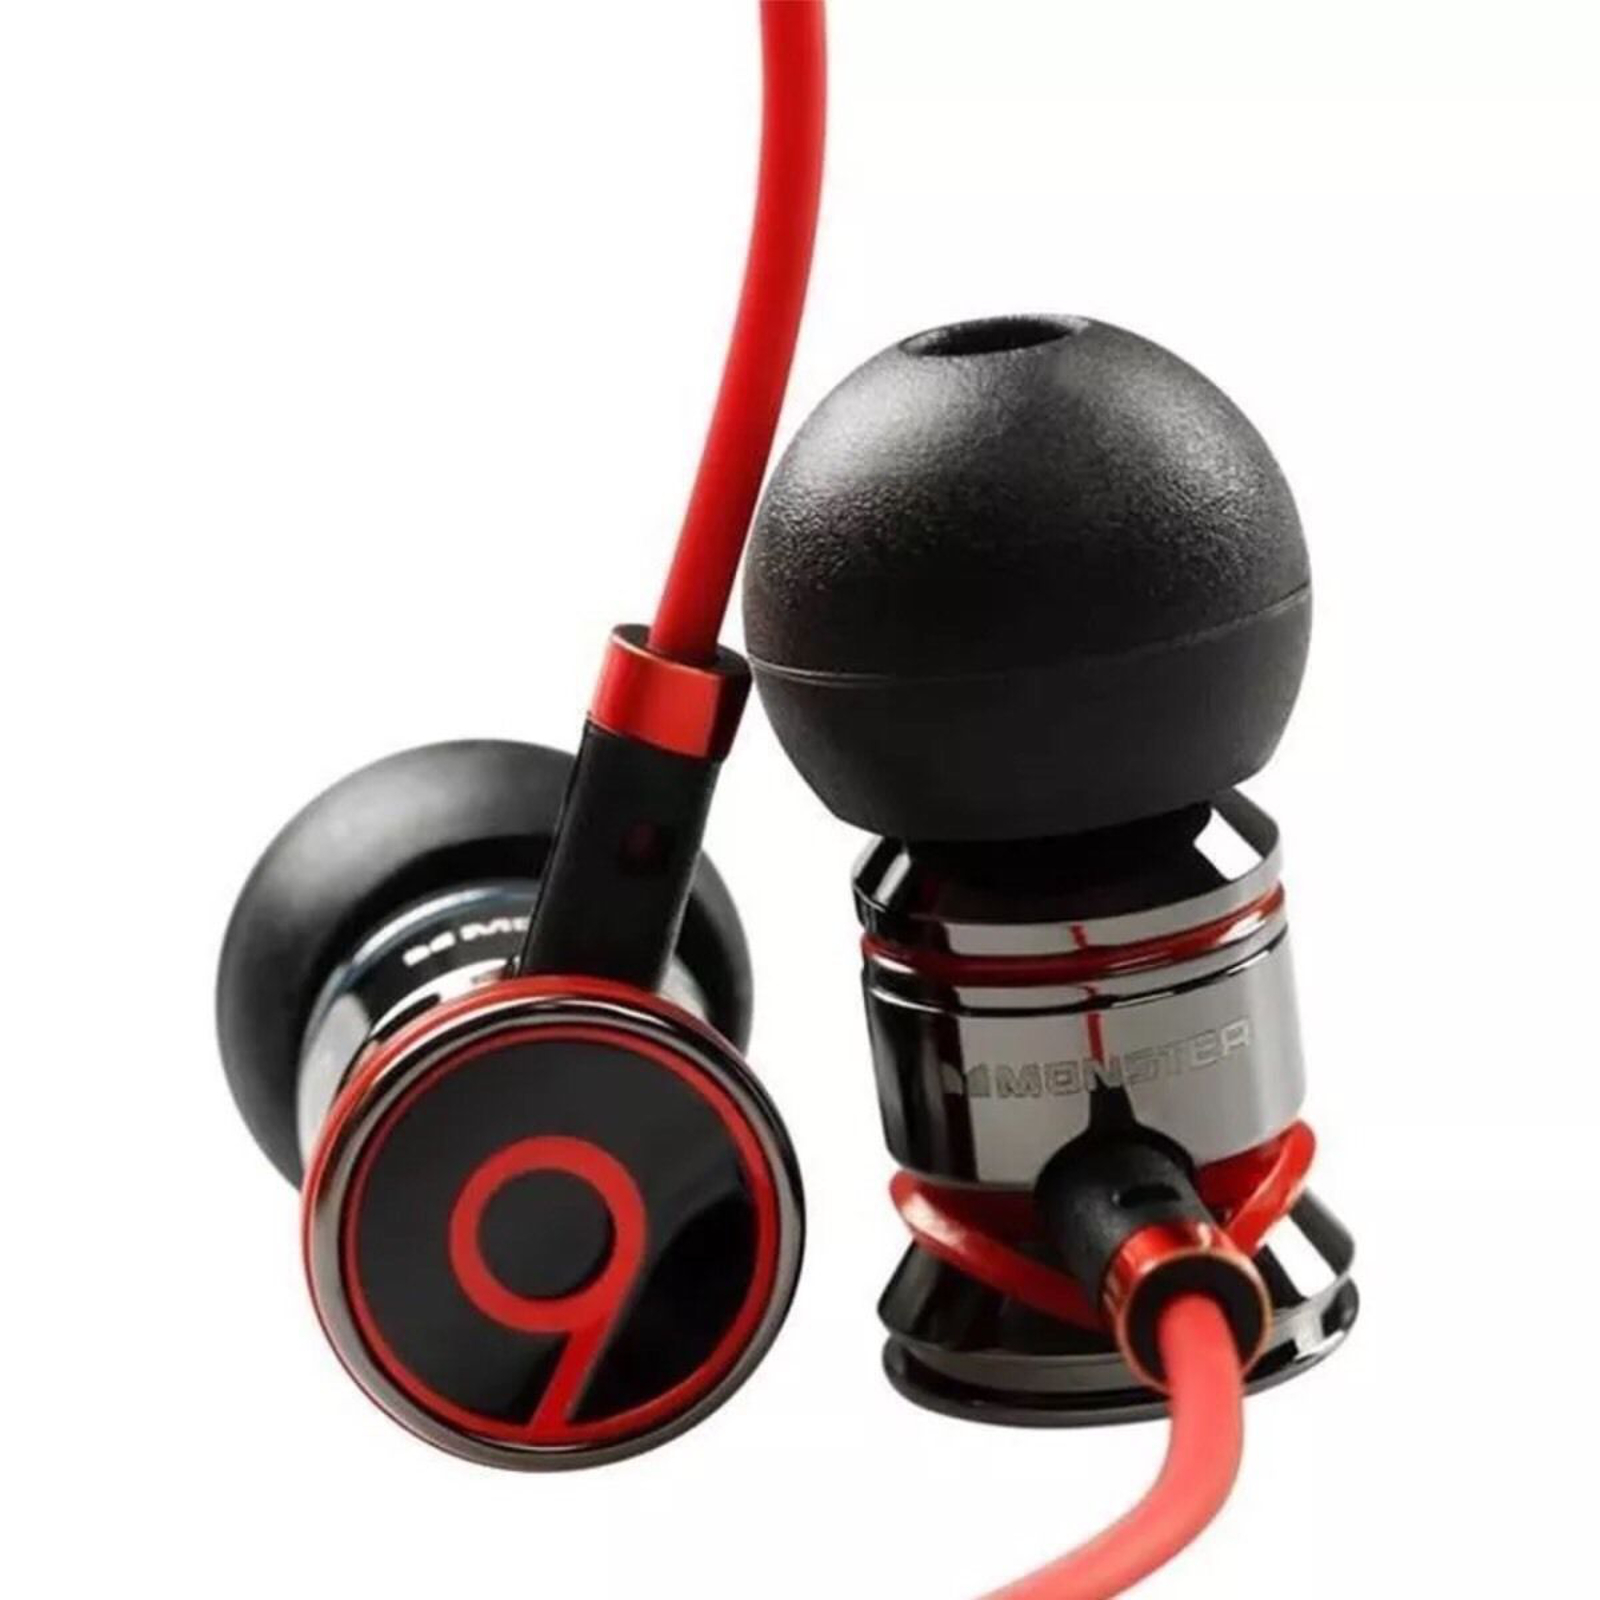 Earbud mic phone headset wired - beats wired earbuds with mic